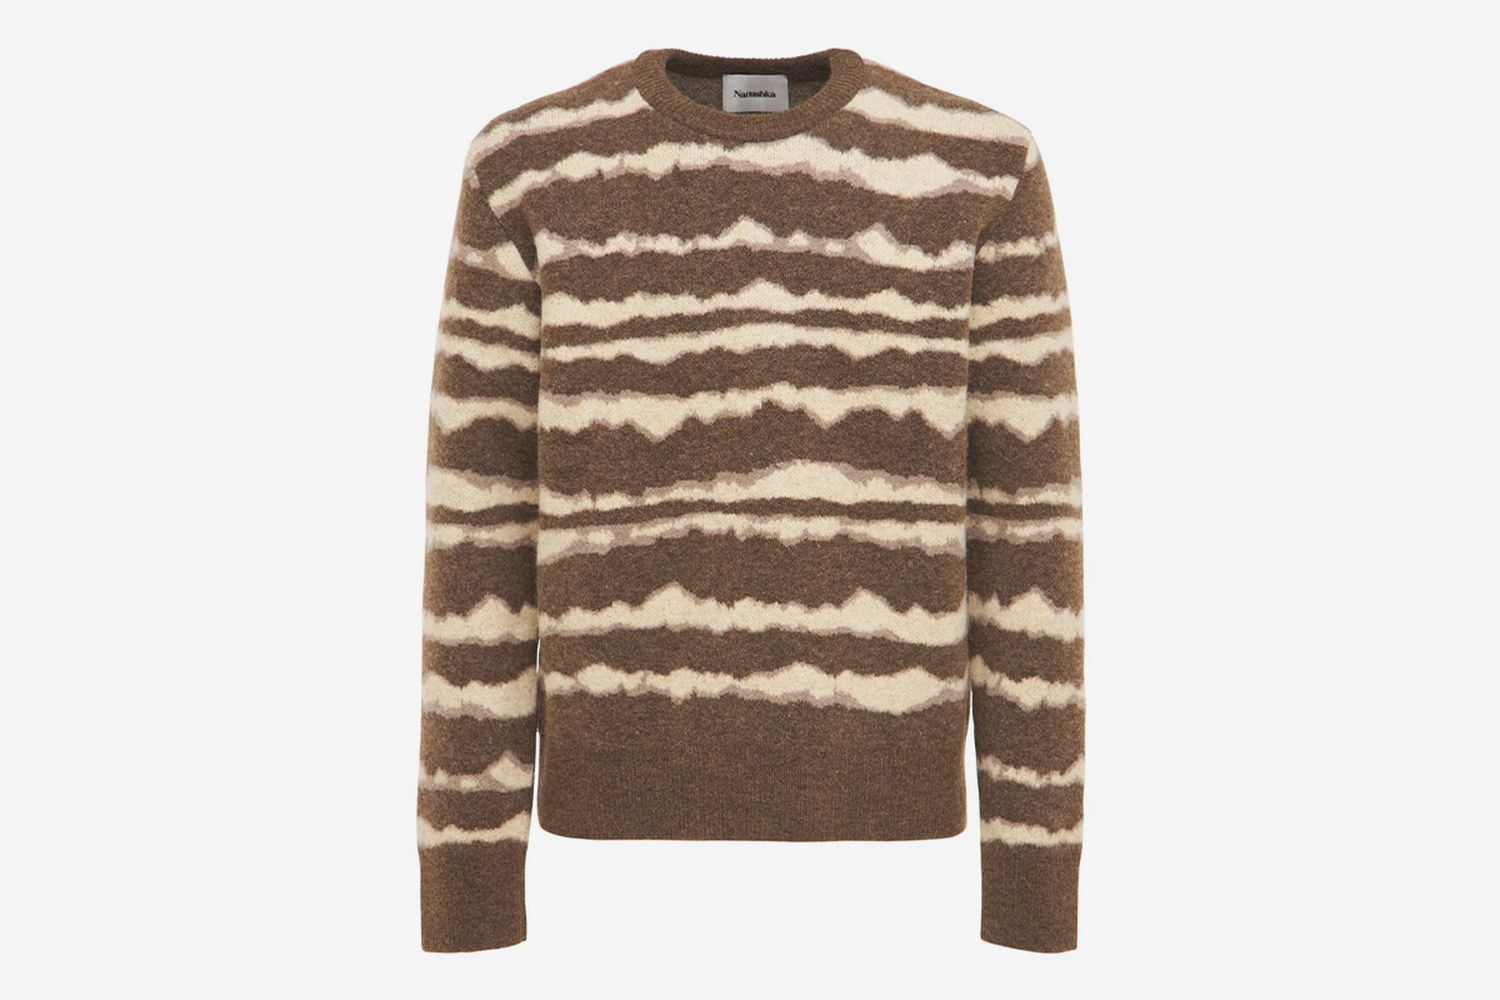 Virote Knit Sweater